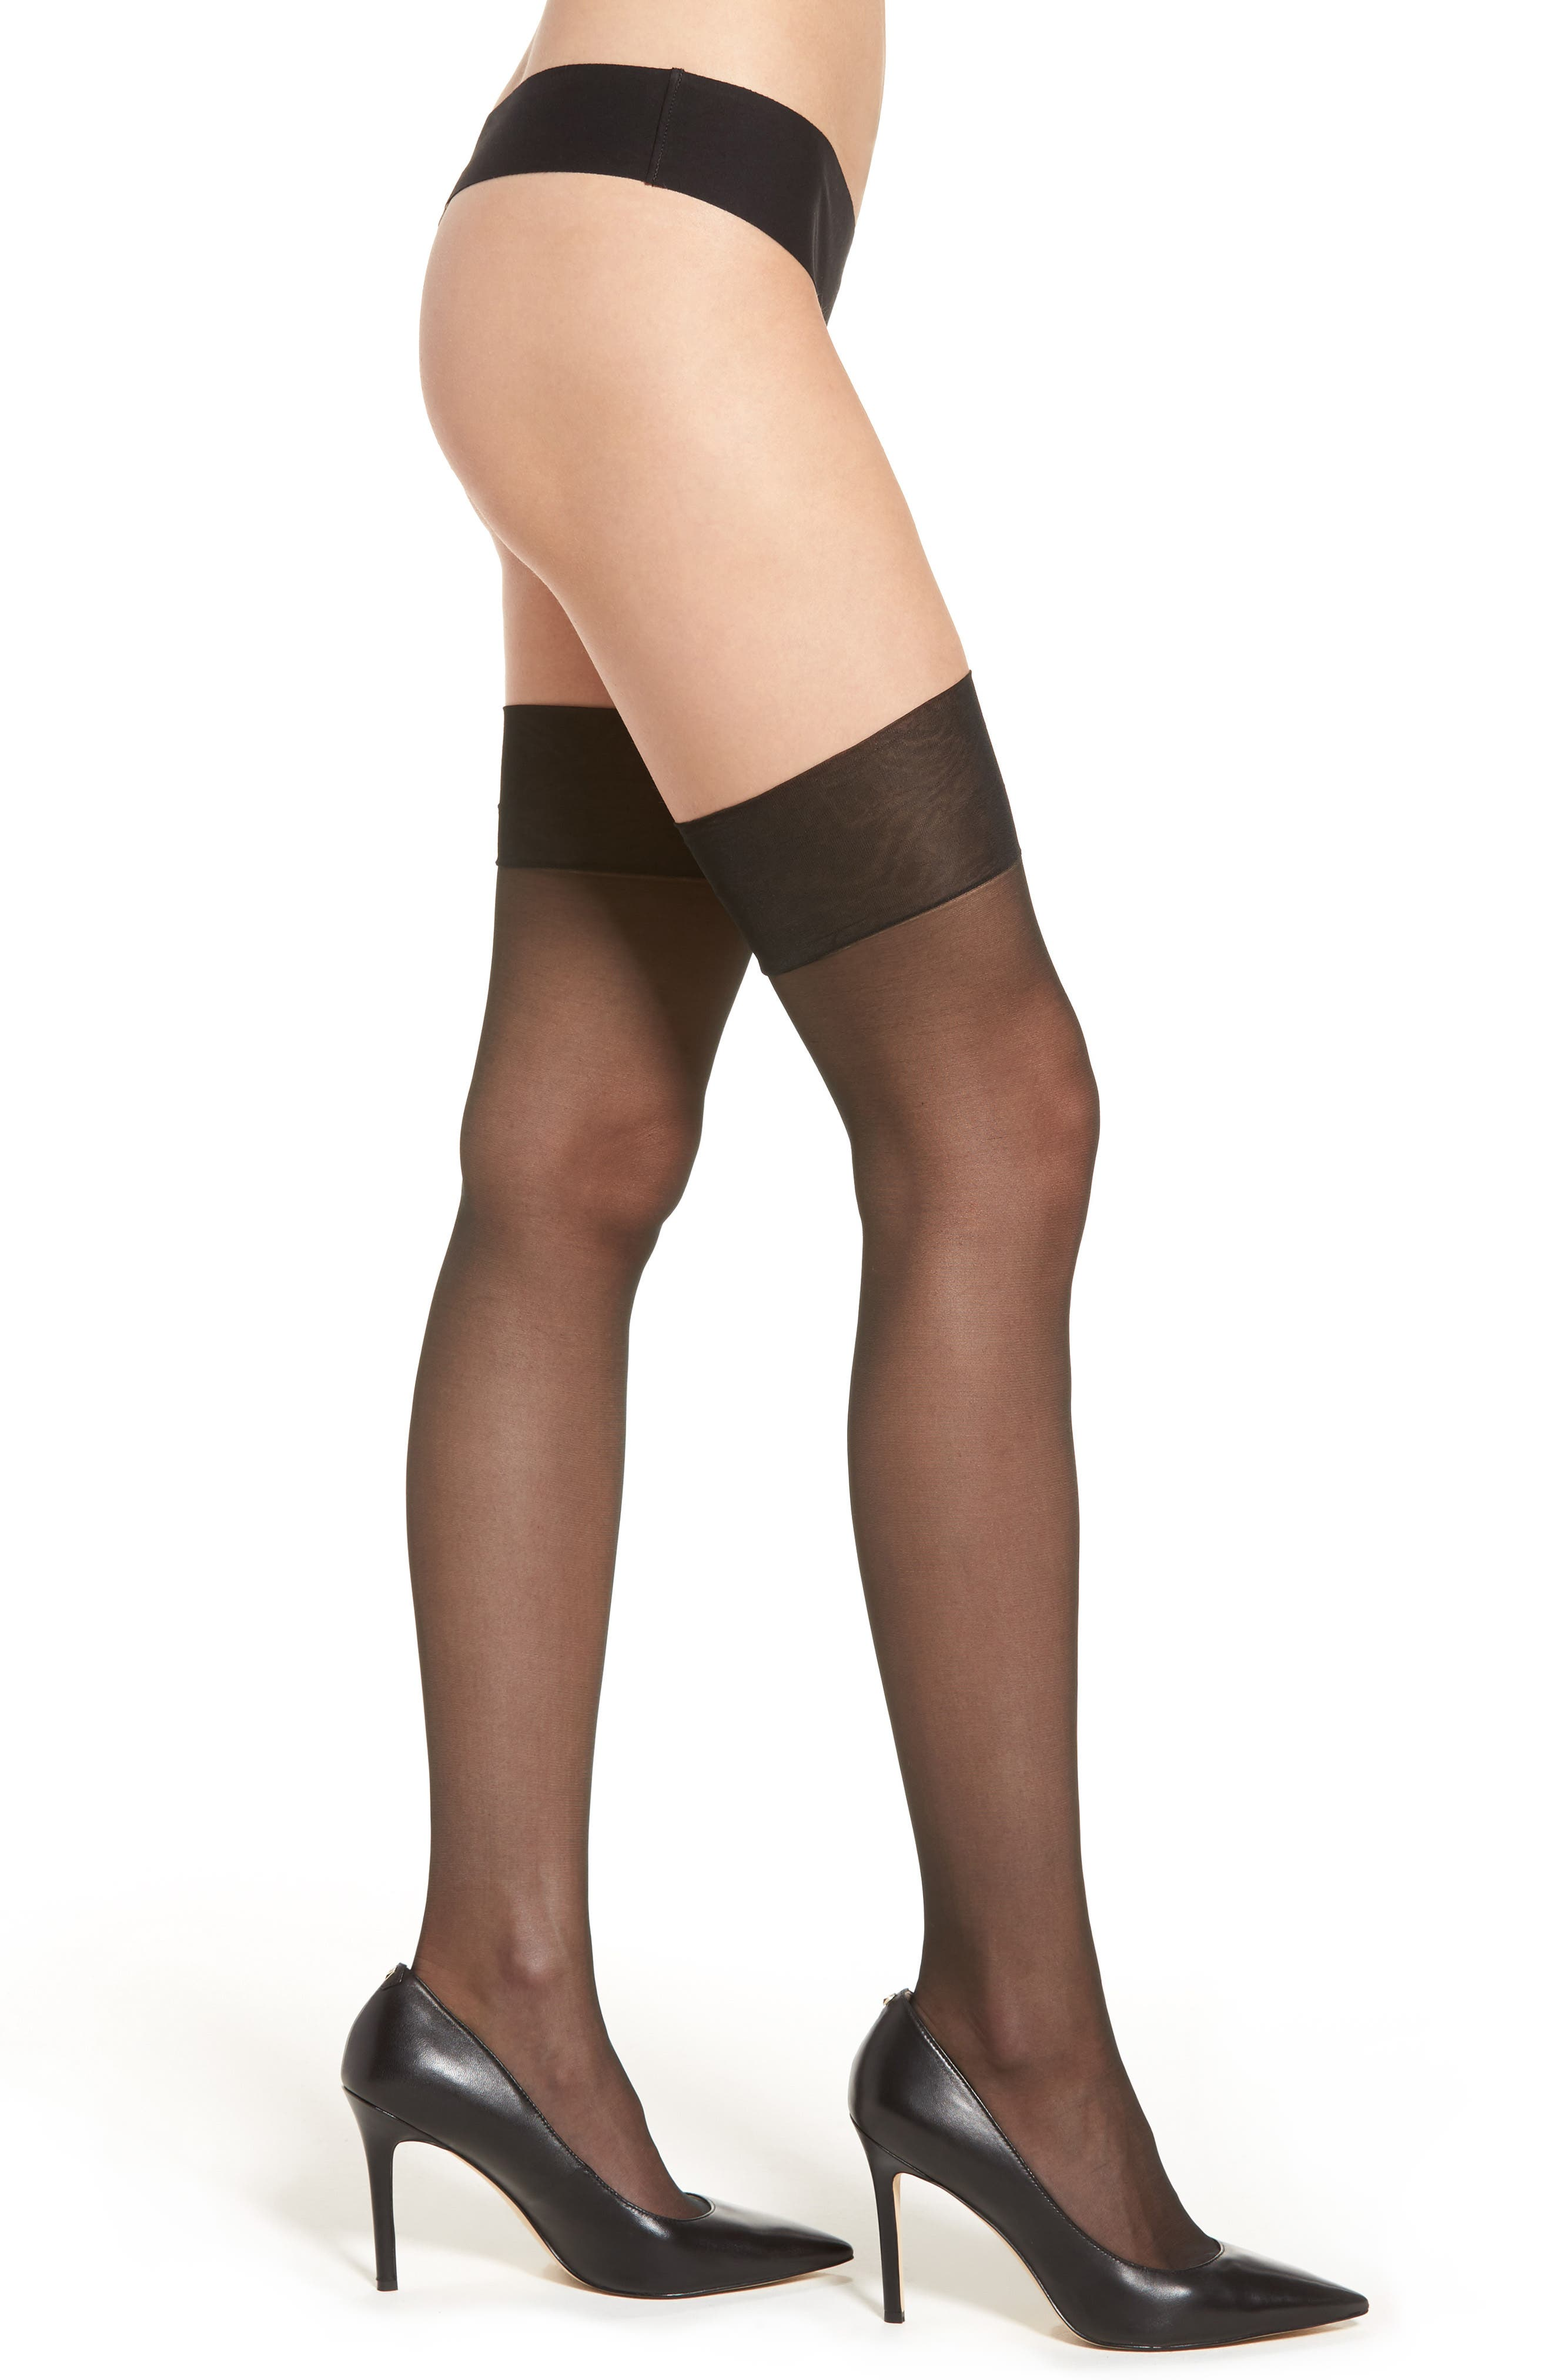 Stockings,                         Main,                         color, Black